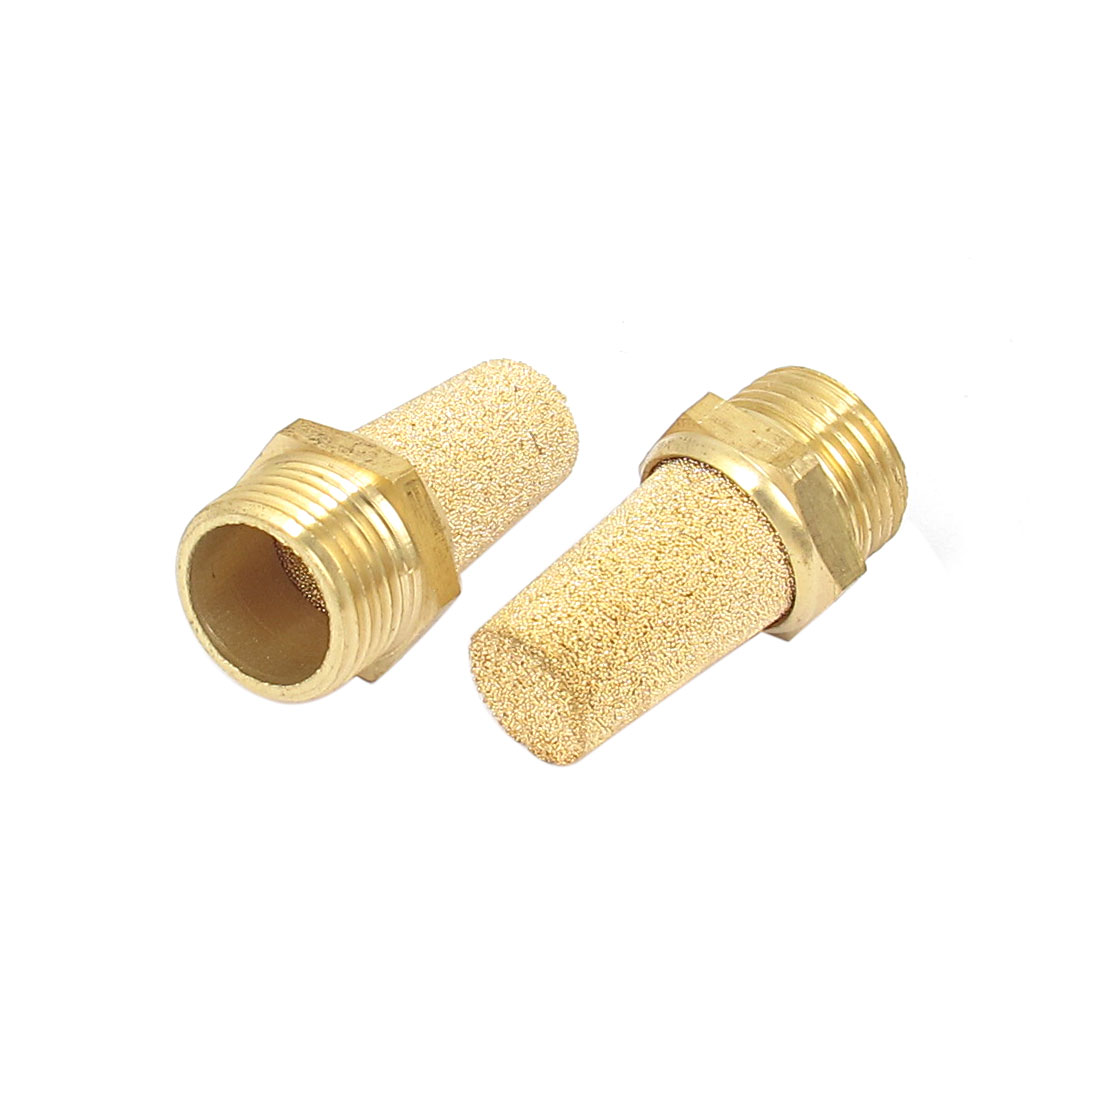 3/8BSP Thread Brass Pneumatic Air Exhaust Breather Muffler Filter 2pcs